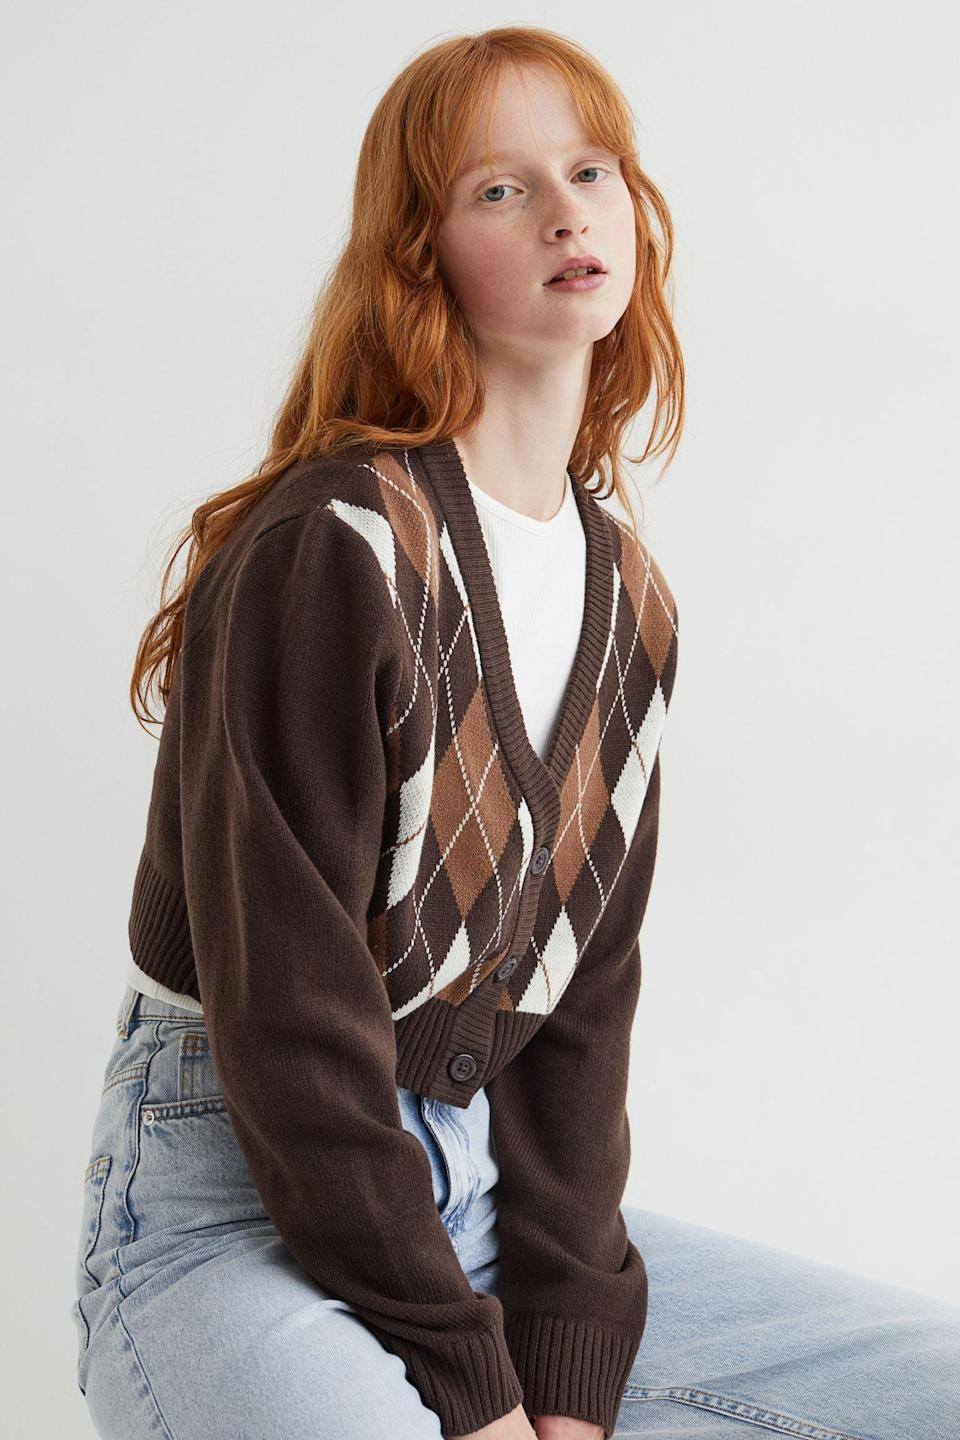 <p>This <span>H&amp;M Short Cardigan</span> ($18) will easily join your lineup of everyday pieces, it's so wearable and fun. Dial up the preppy vibes by pairing it with a tennis skirt and some Keds sneakers.</p>